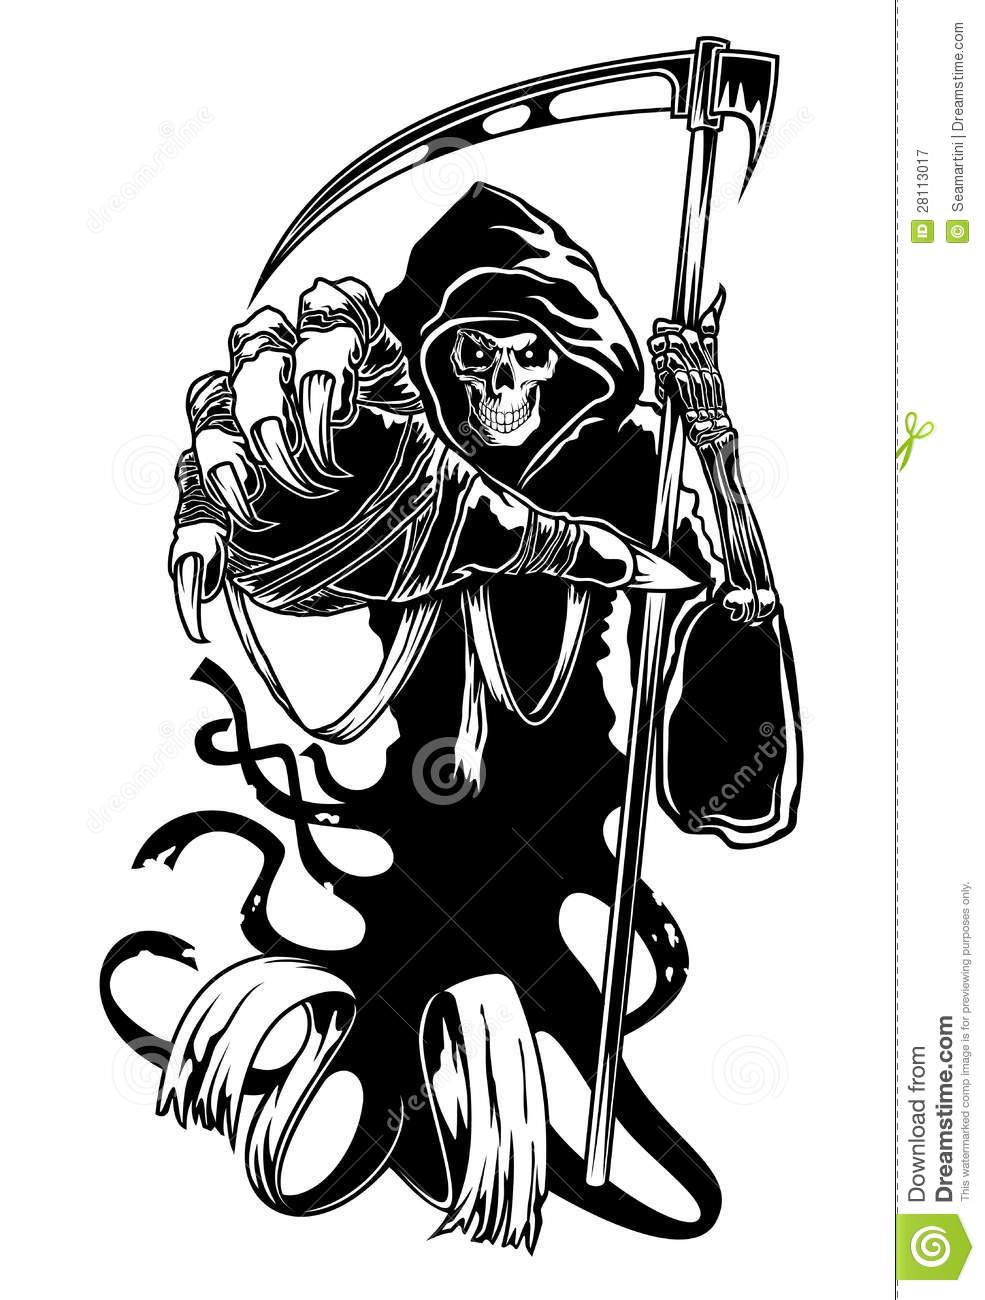 Black Death With Scythe Stock Vector Illustration Of Fear 28113017